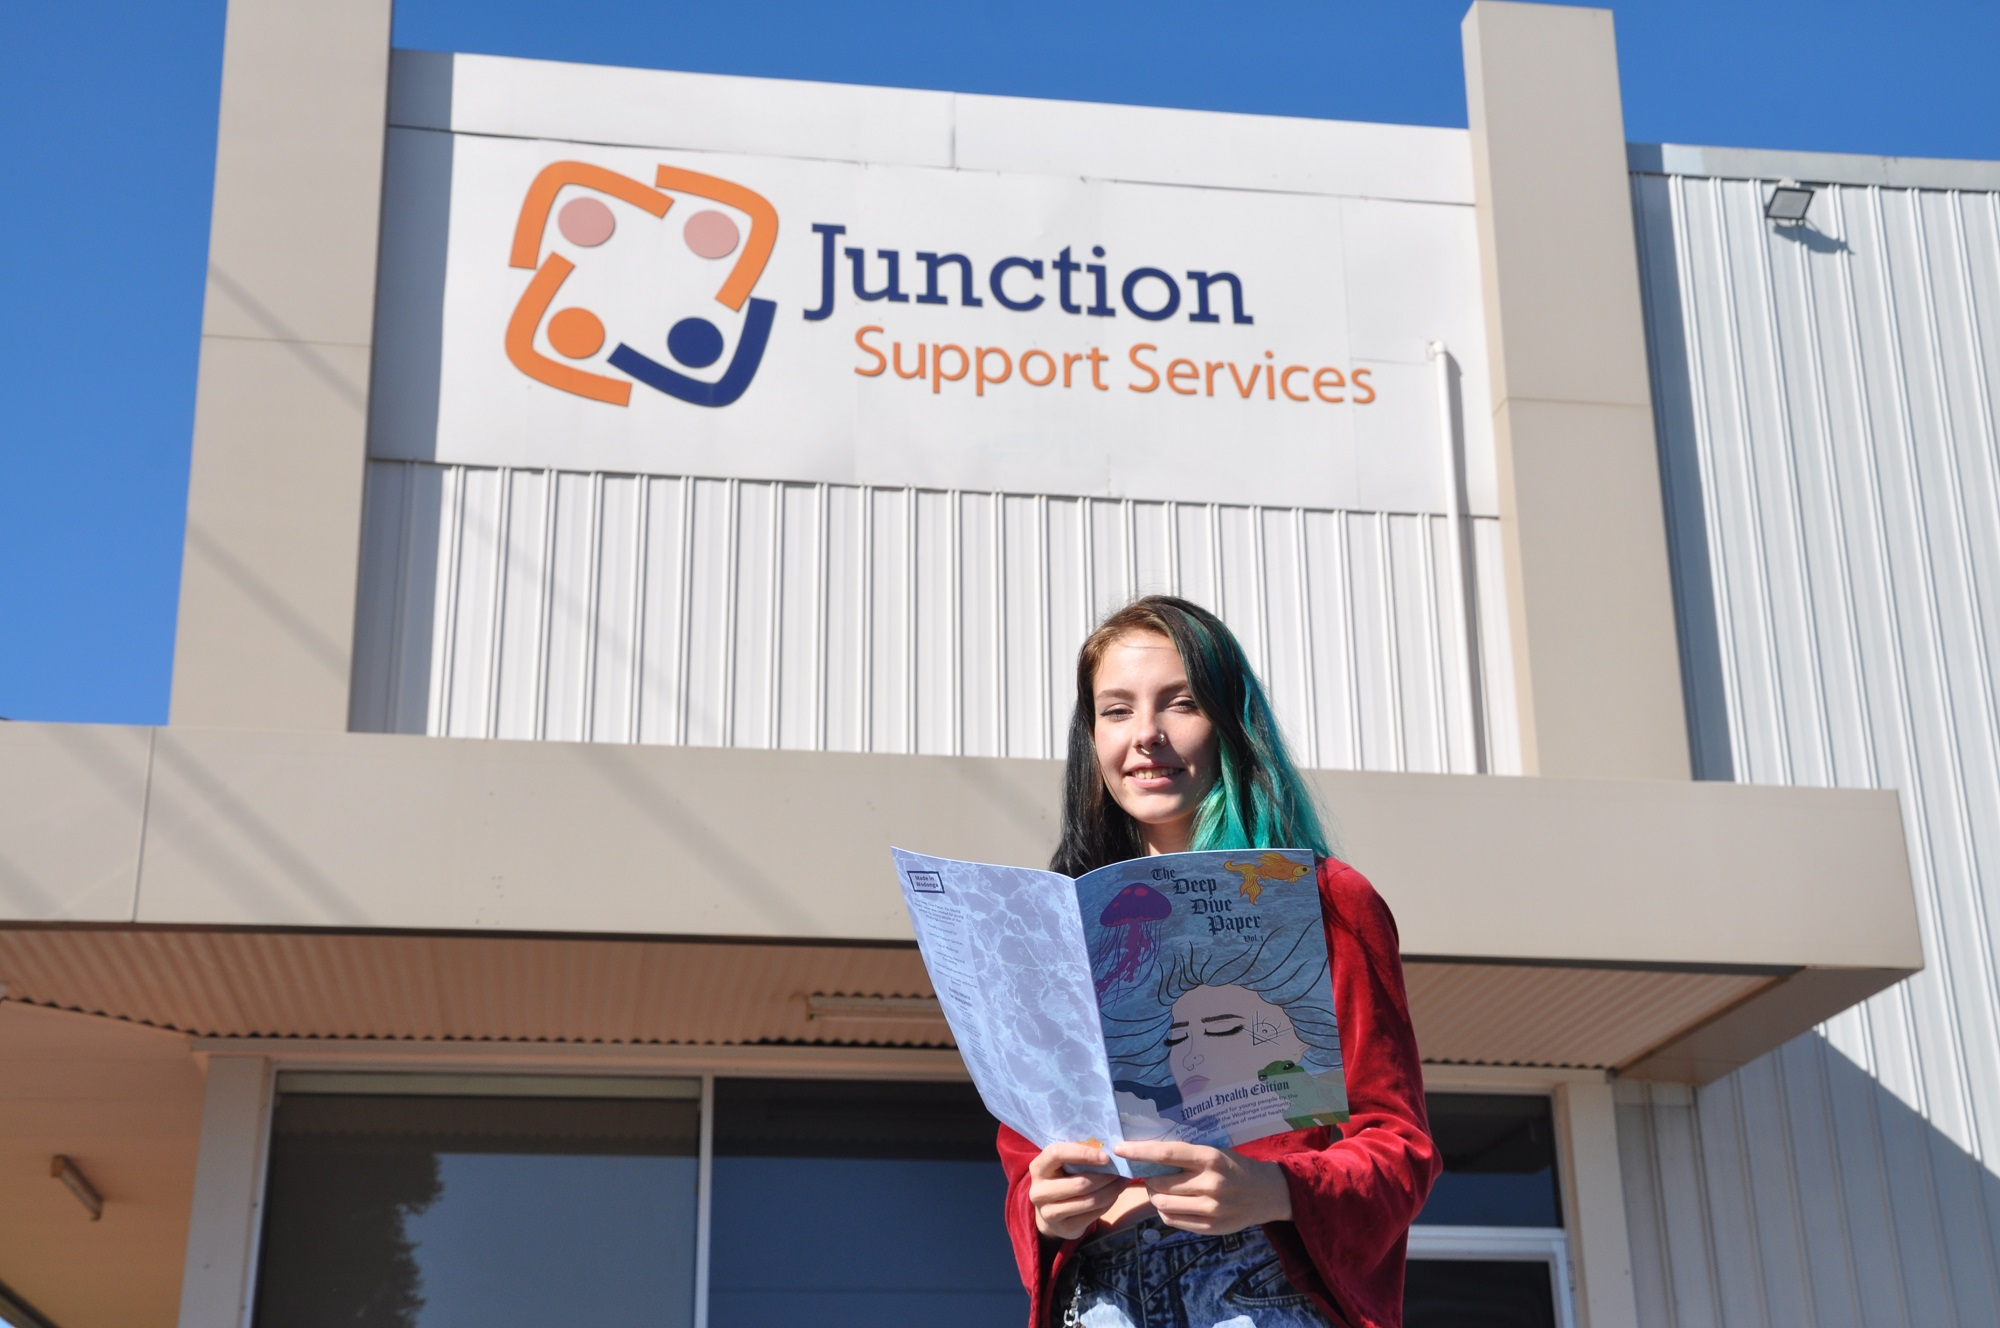 A young person reads Deep Dive outside of Junction Support Services